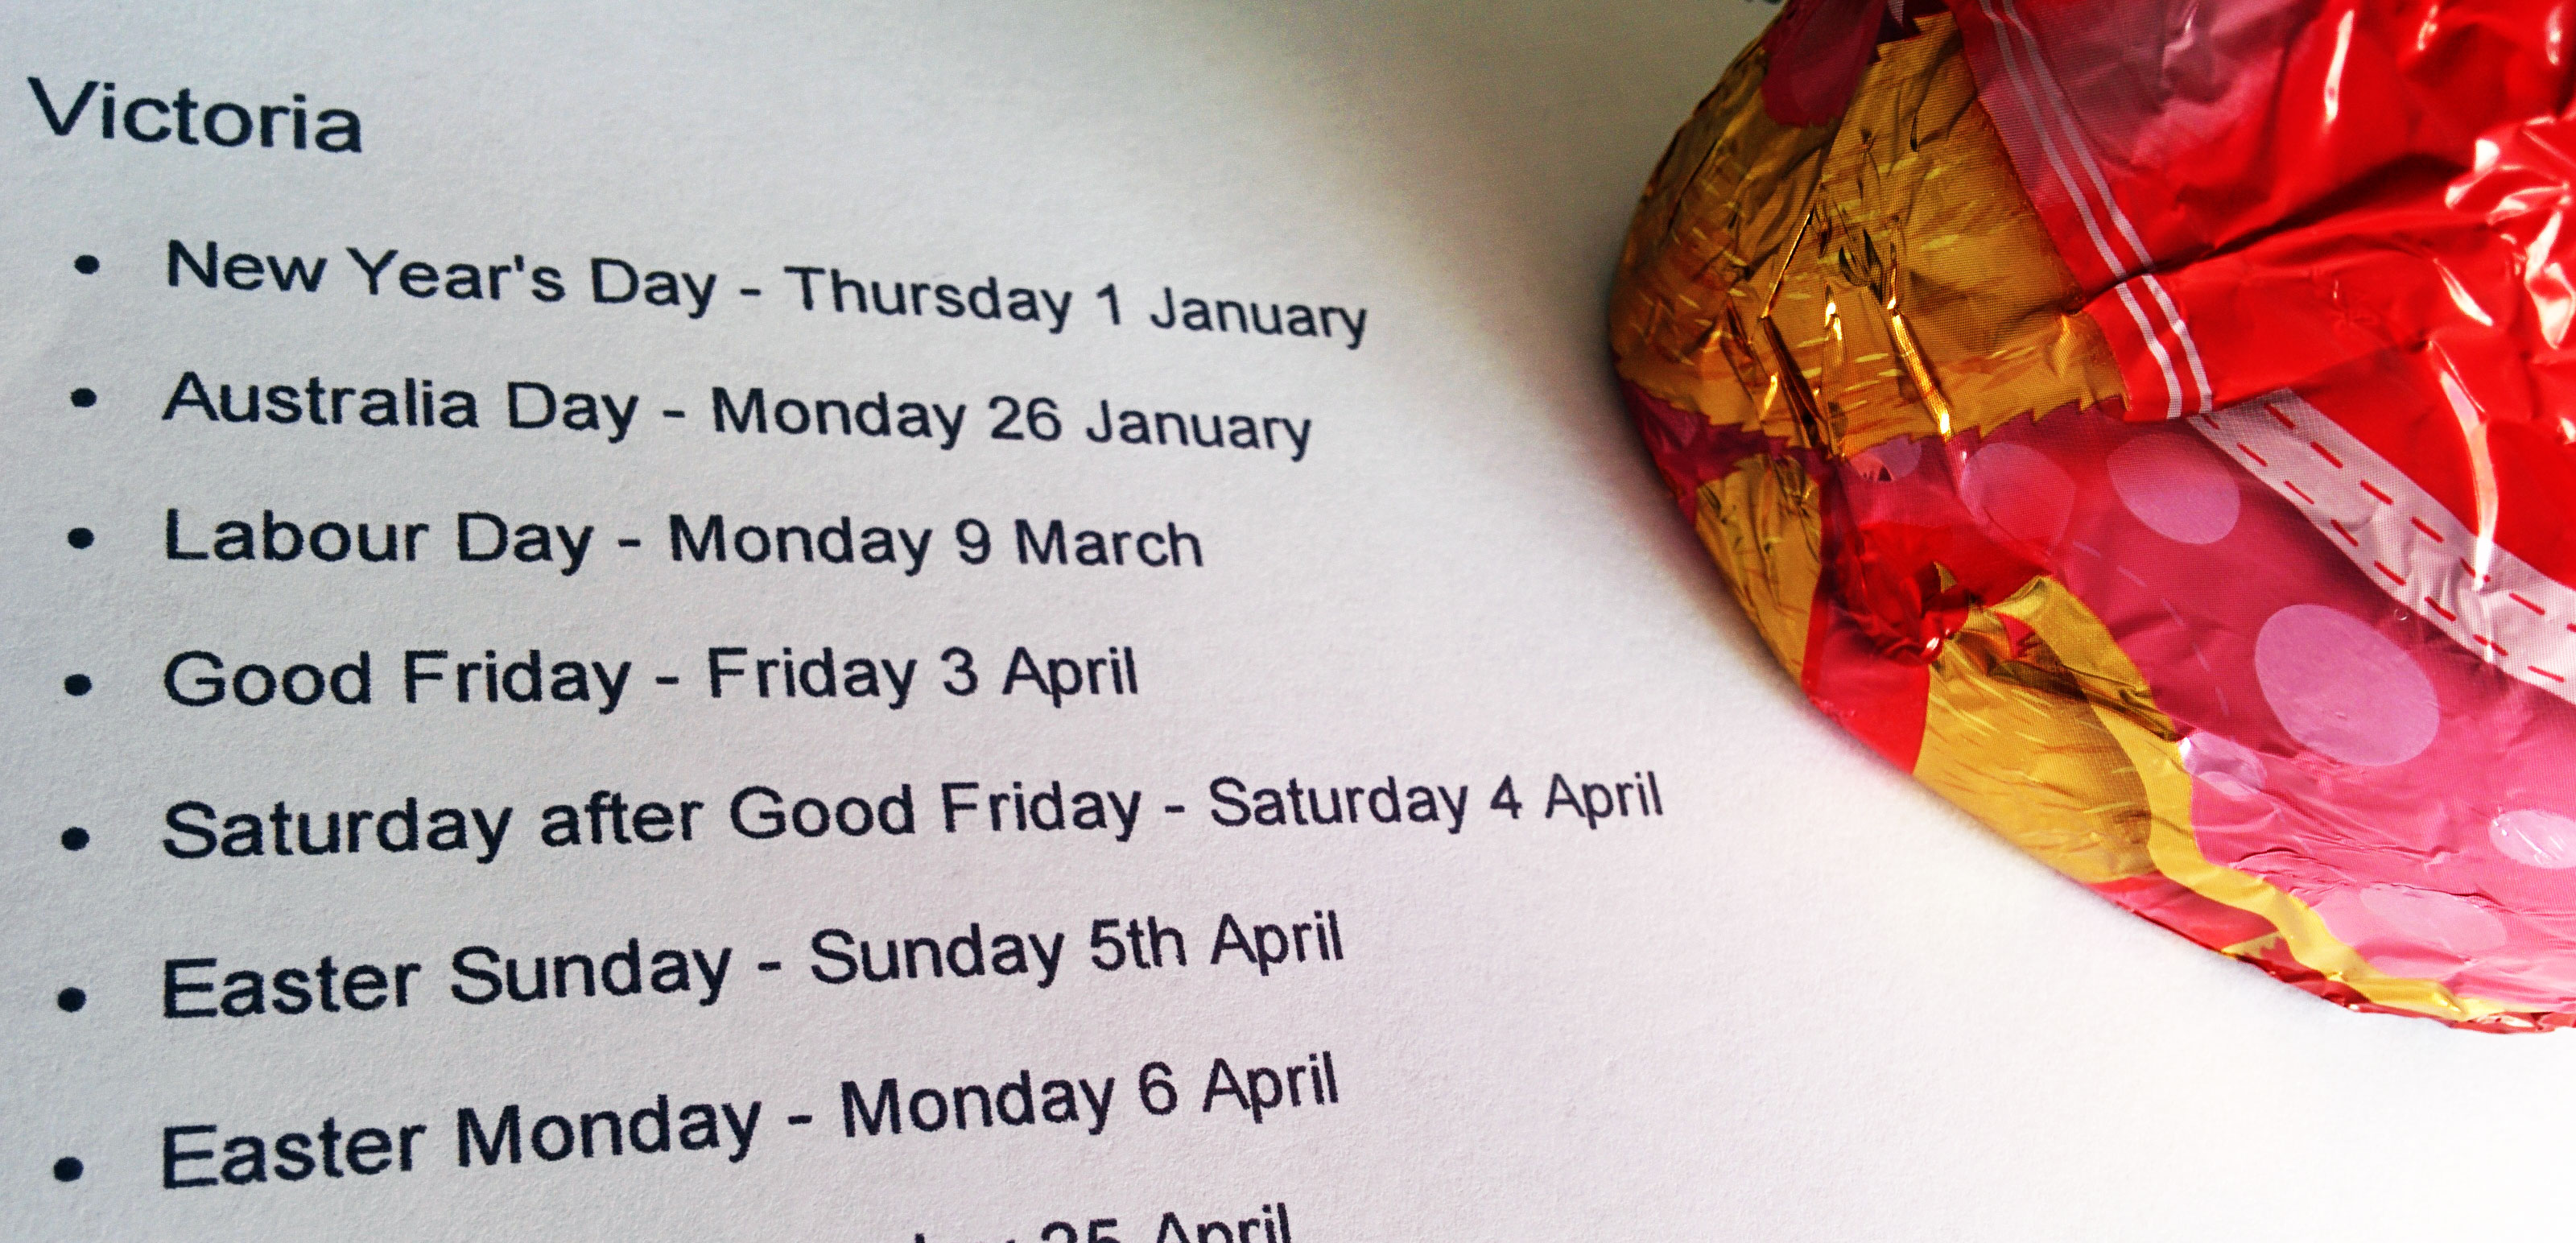 Easter 2015 public holidays